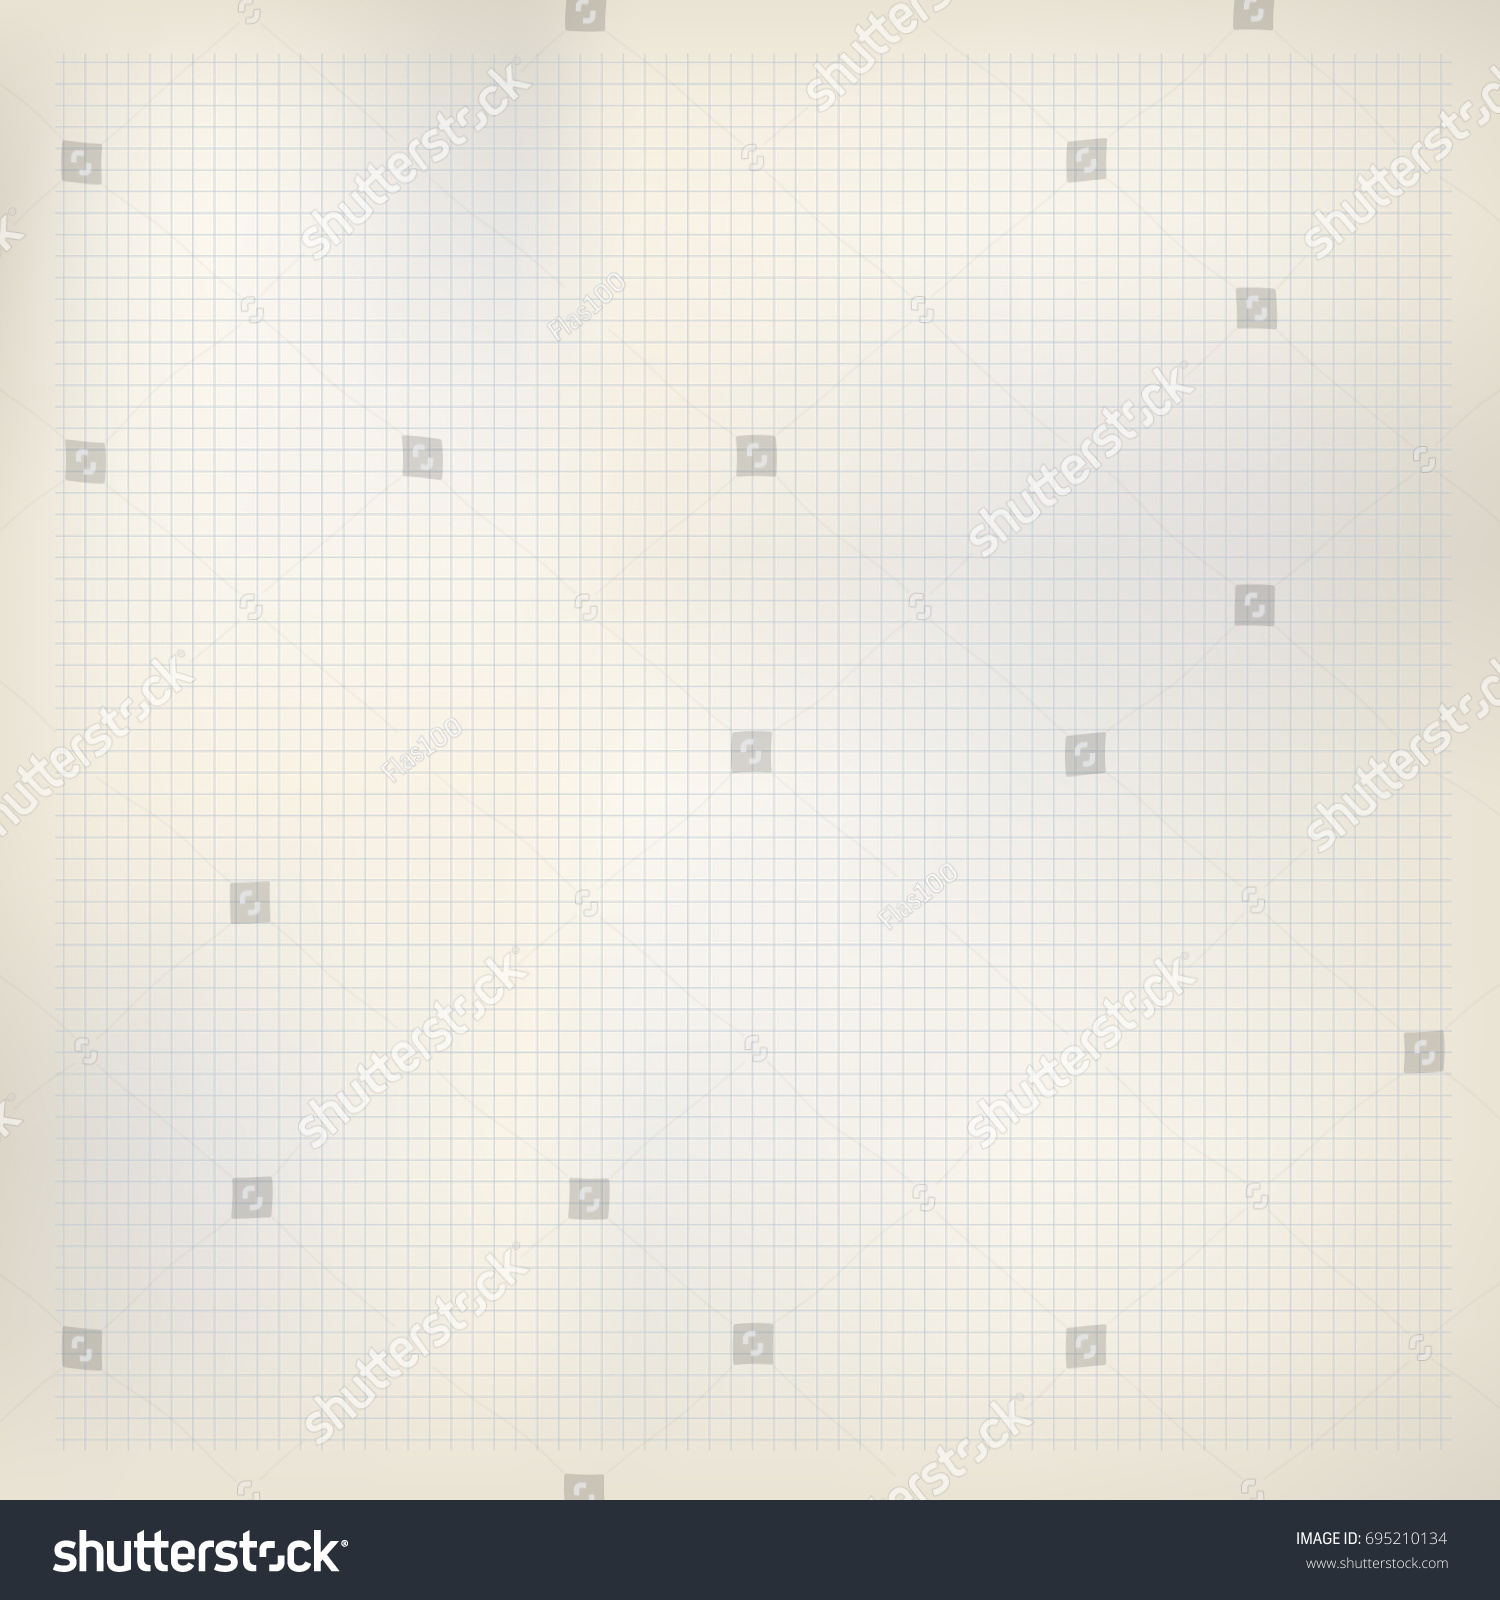 Beige Paper Blue Squares Math Grid Stock Vector 695210134 ...